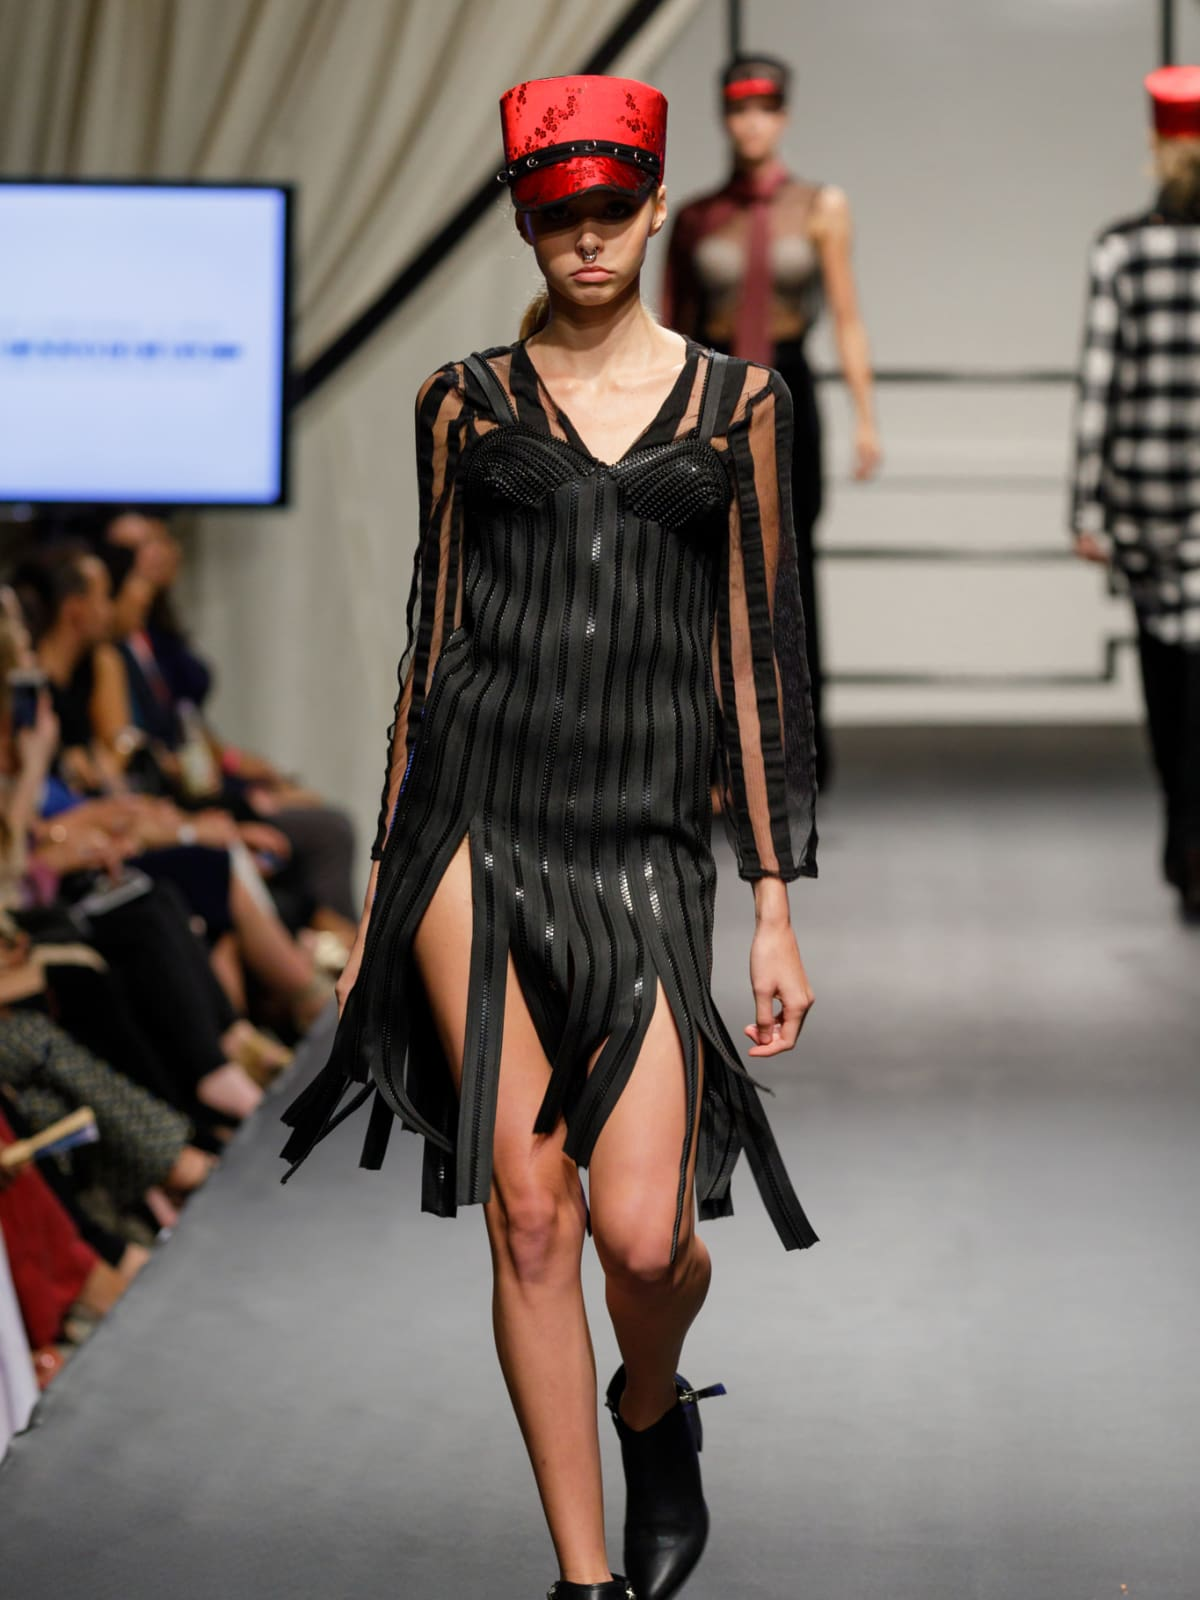 Gunnar Deatherage design at Fashion X Houston